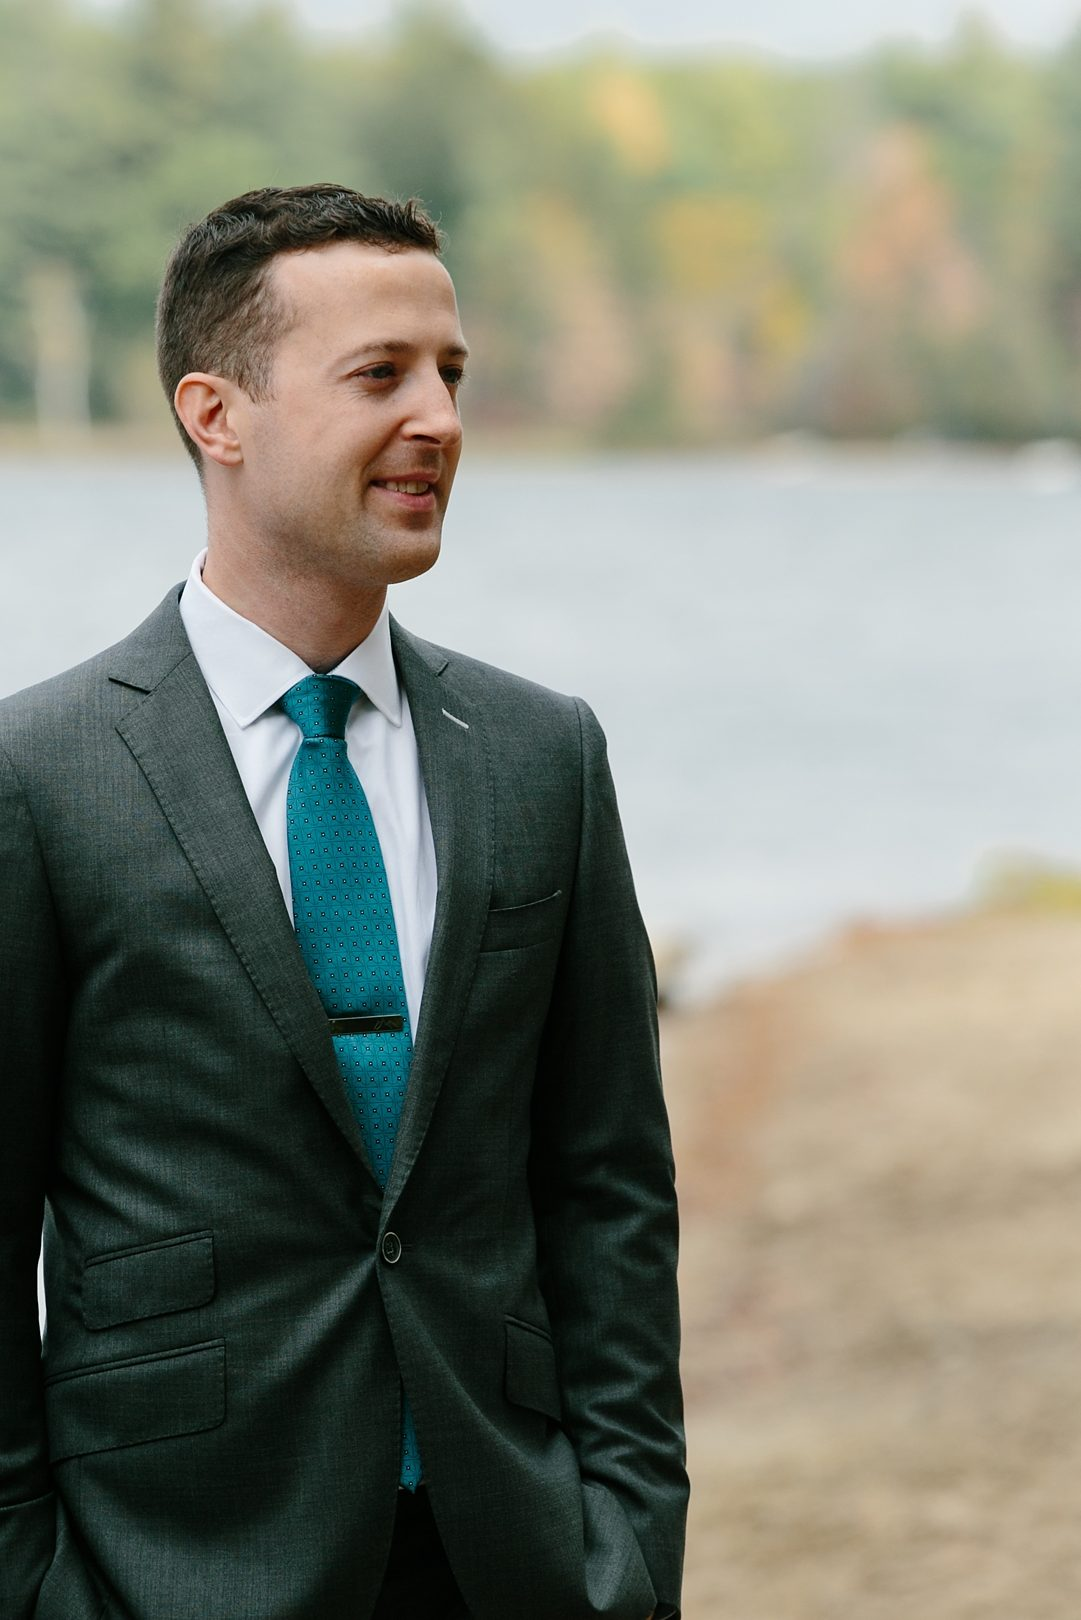 Allegra_Anderson__Photography_New_Hampshire_Wedding_Photographer_Jackson_184